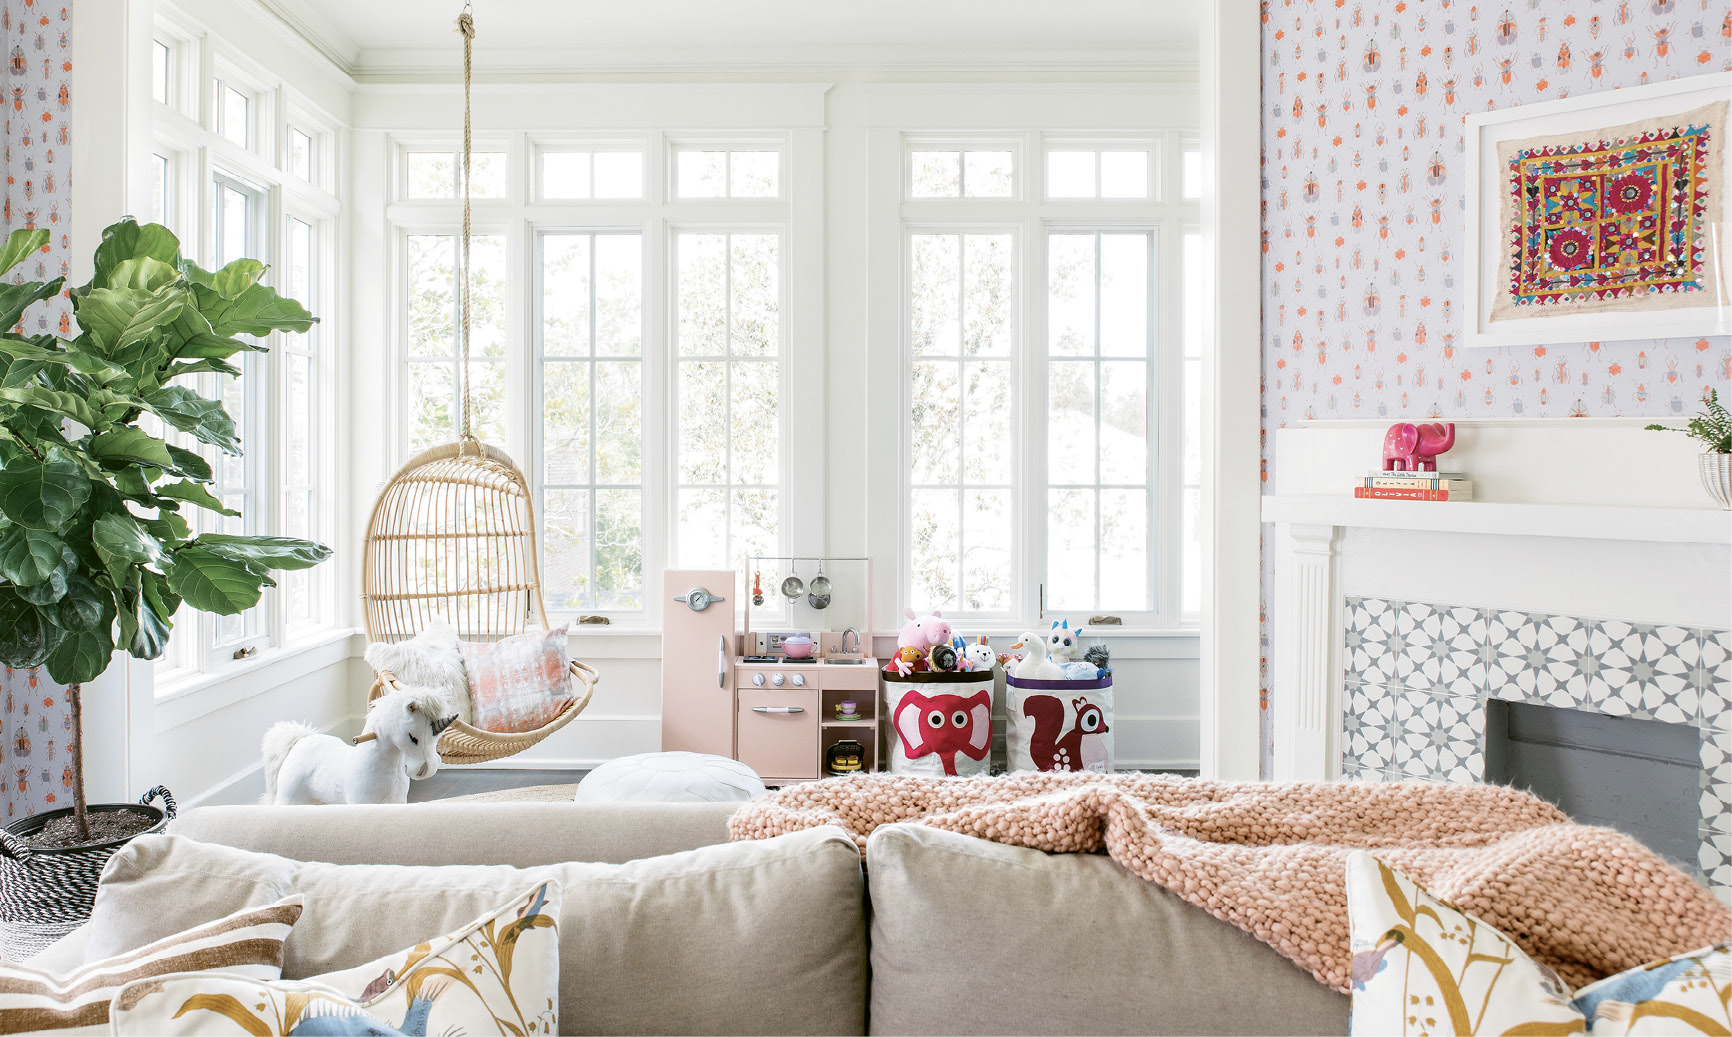 """In the vibrant playroom, comfy, kid-friendly furniture—like the Serena & Lily hanging chair and Lee Industries pullout sofa outfitted in performance fabric—mix with playful décor, including a vintage textile interior designer Melissa Lenox found in Jodhpur, India, and Lulie Wallace's """"Meyers"""" wallpaper."""